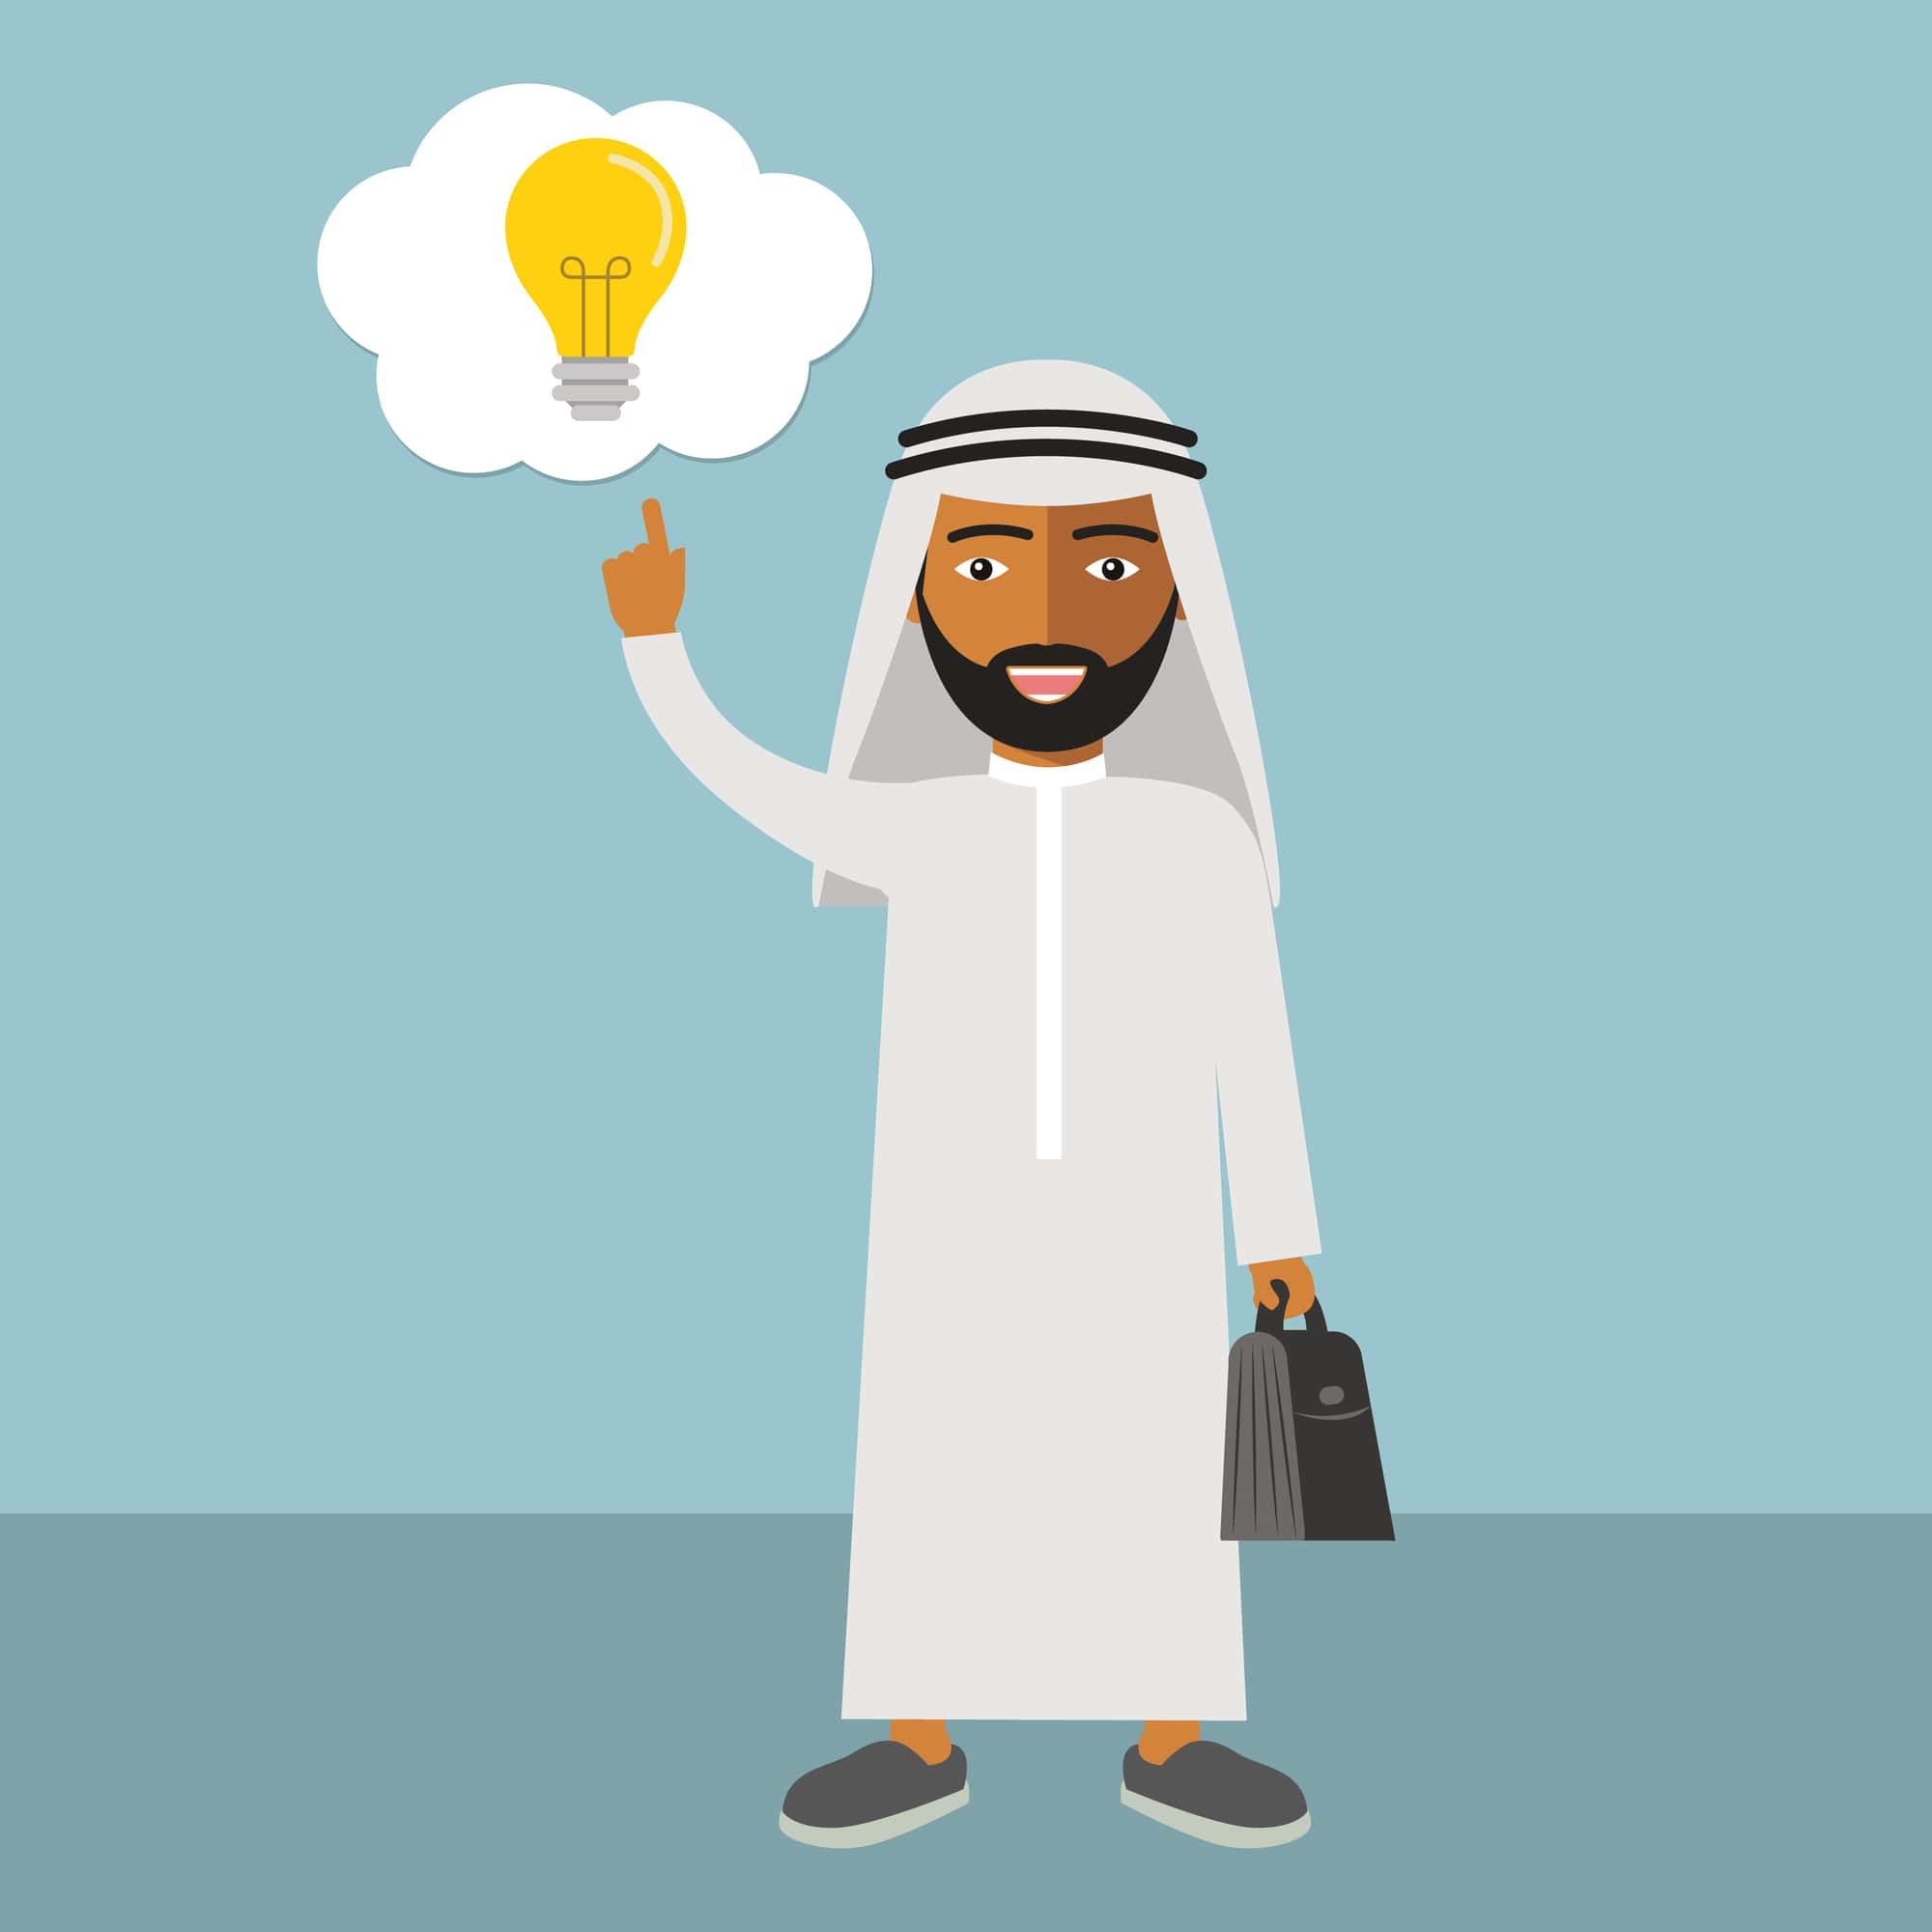 THE CHALLENGES OF FINDING THE UAE National Local PARTNER